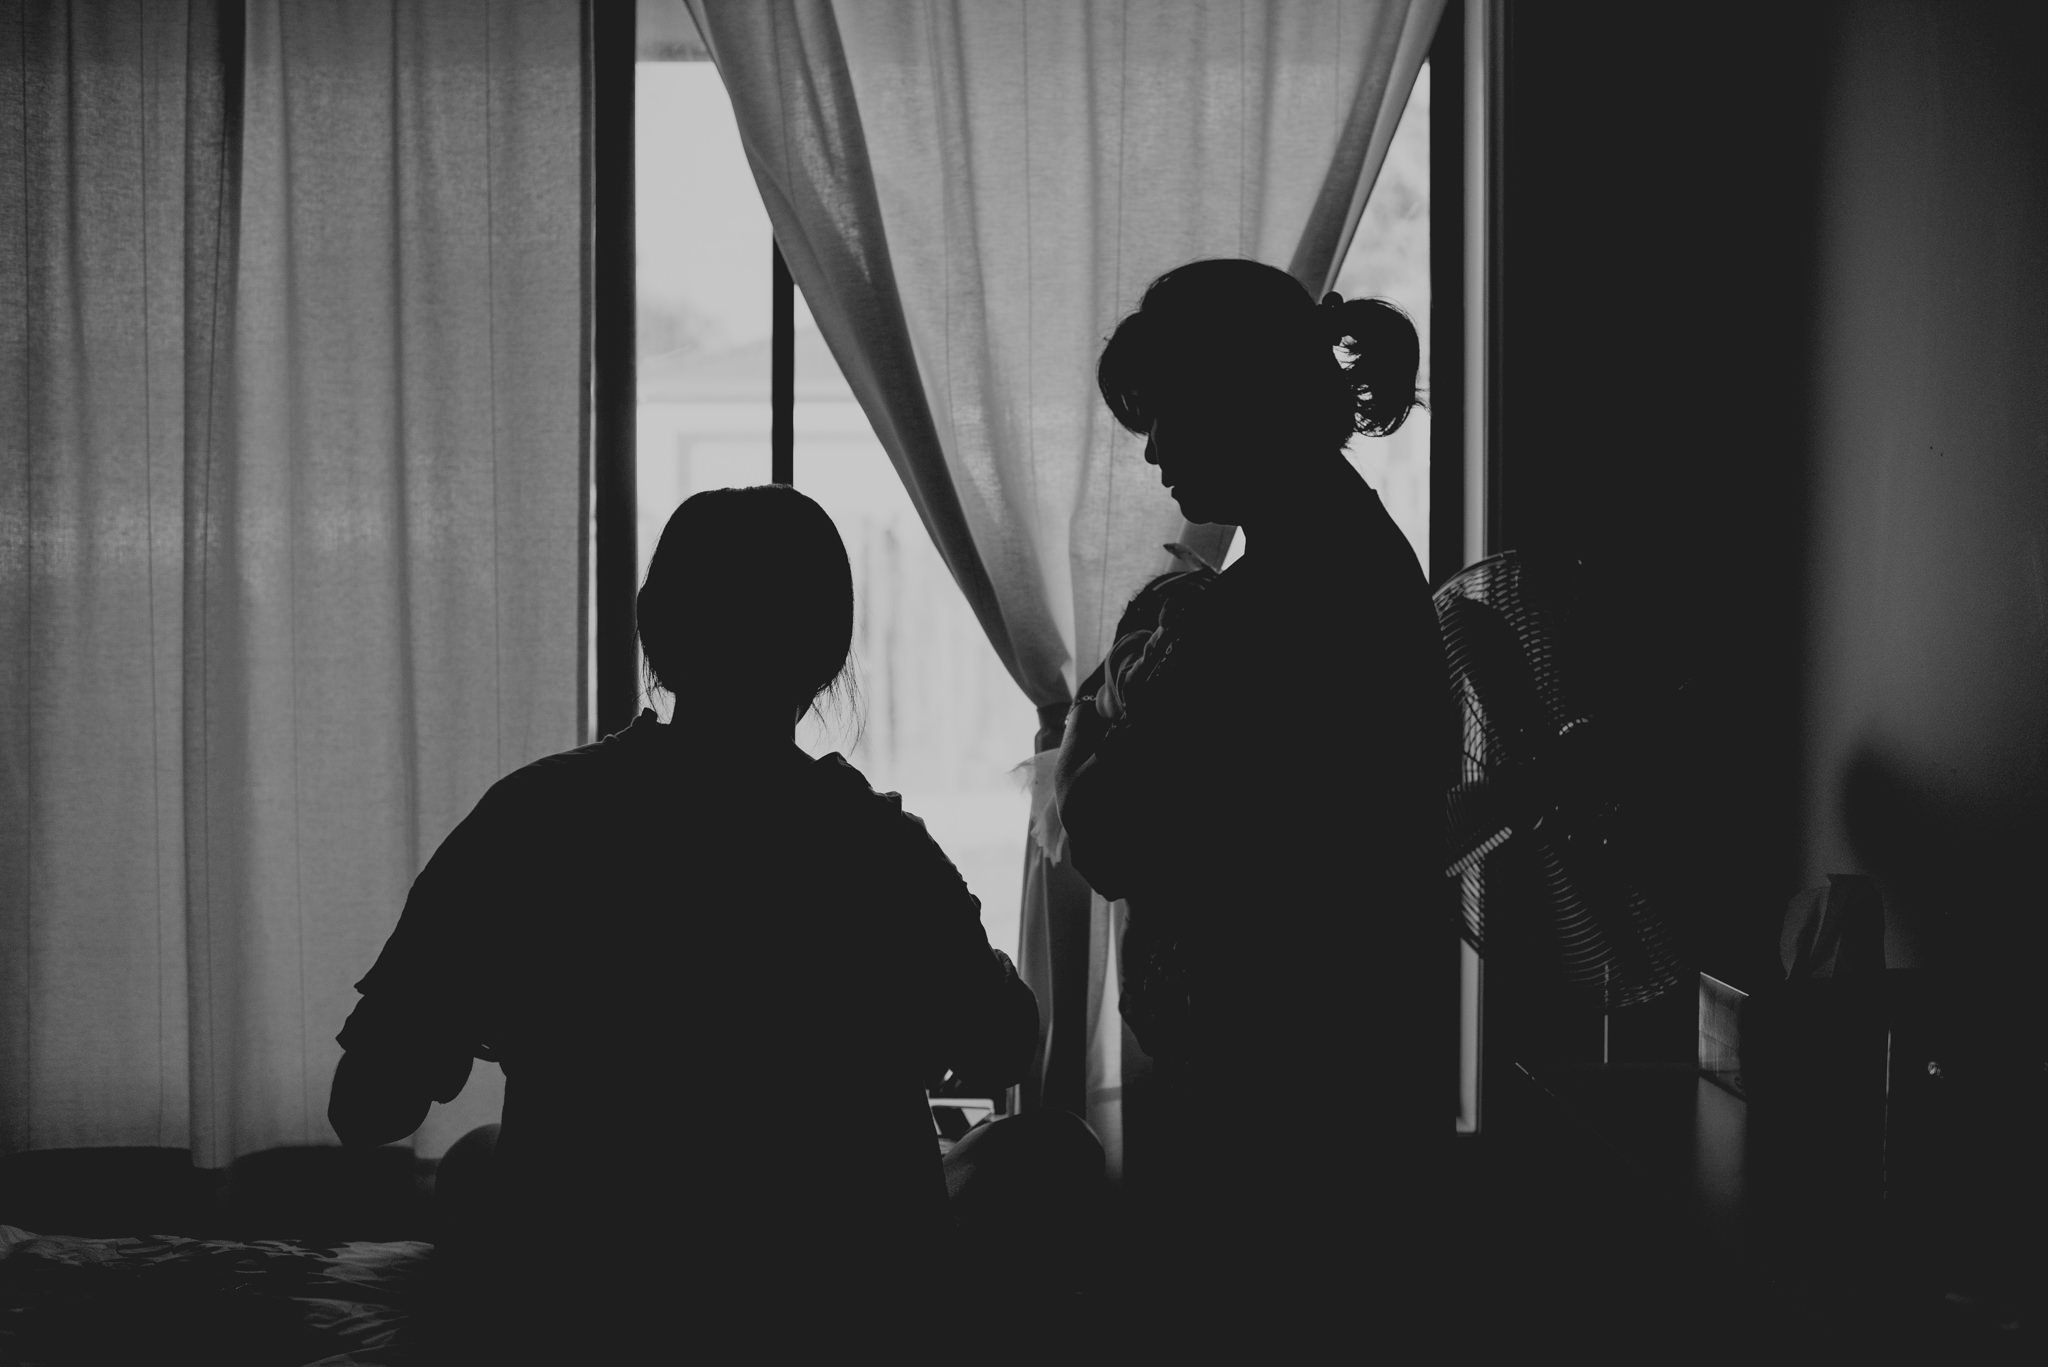 Two silhouettes stand and sit in front of a window